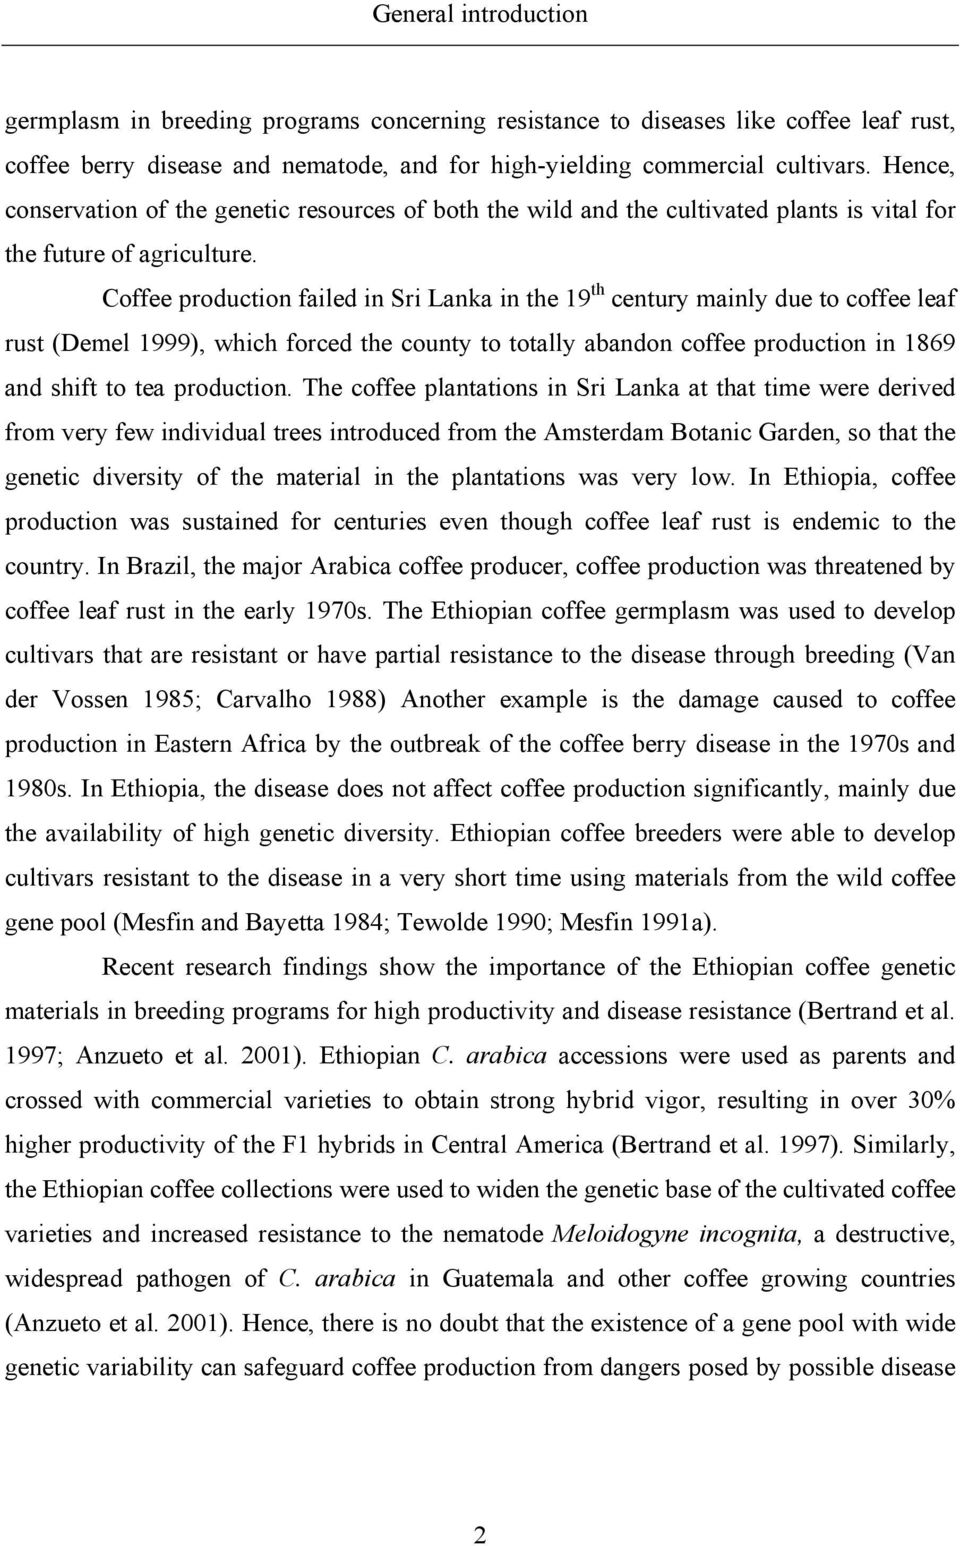 Coffee production failed in Sri Lanka in the 19 th century mainly due to coffee leaf rust (Demel 1999), which forced the county to totally abandon coffee production in 1869 and shift to tea